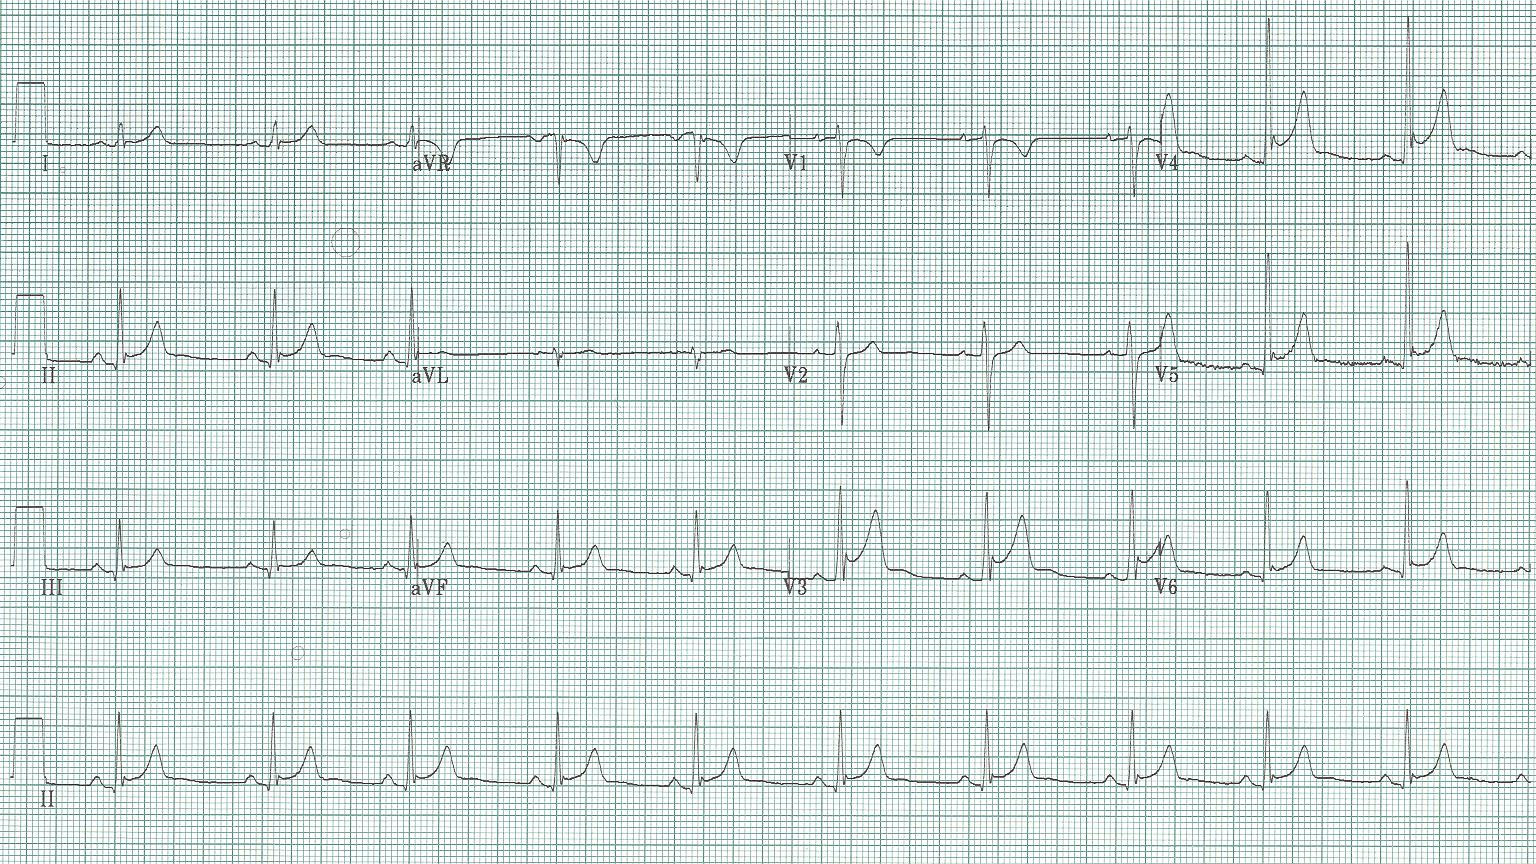 30 - Benign early repolarization